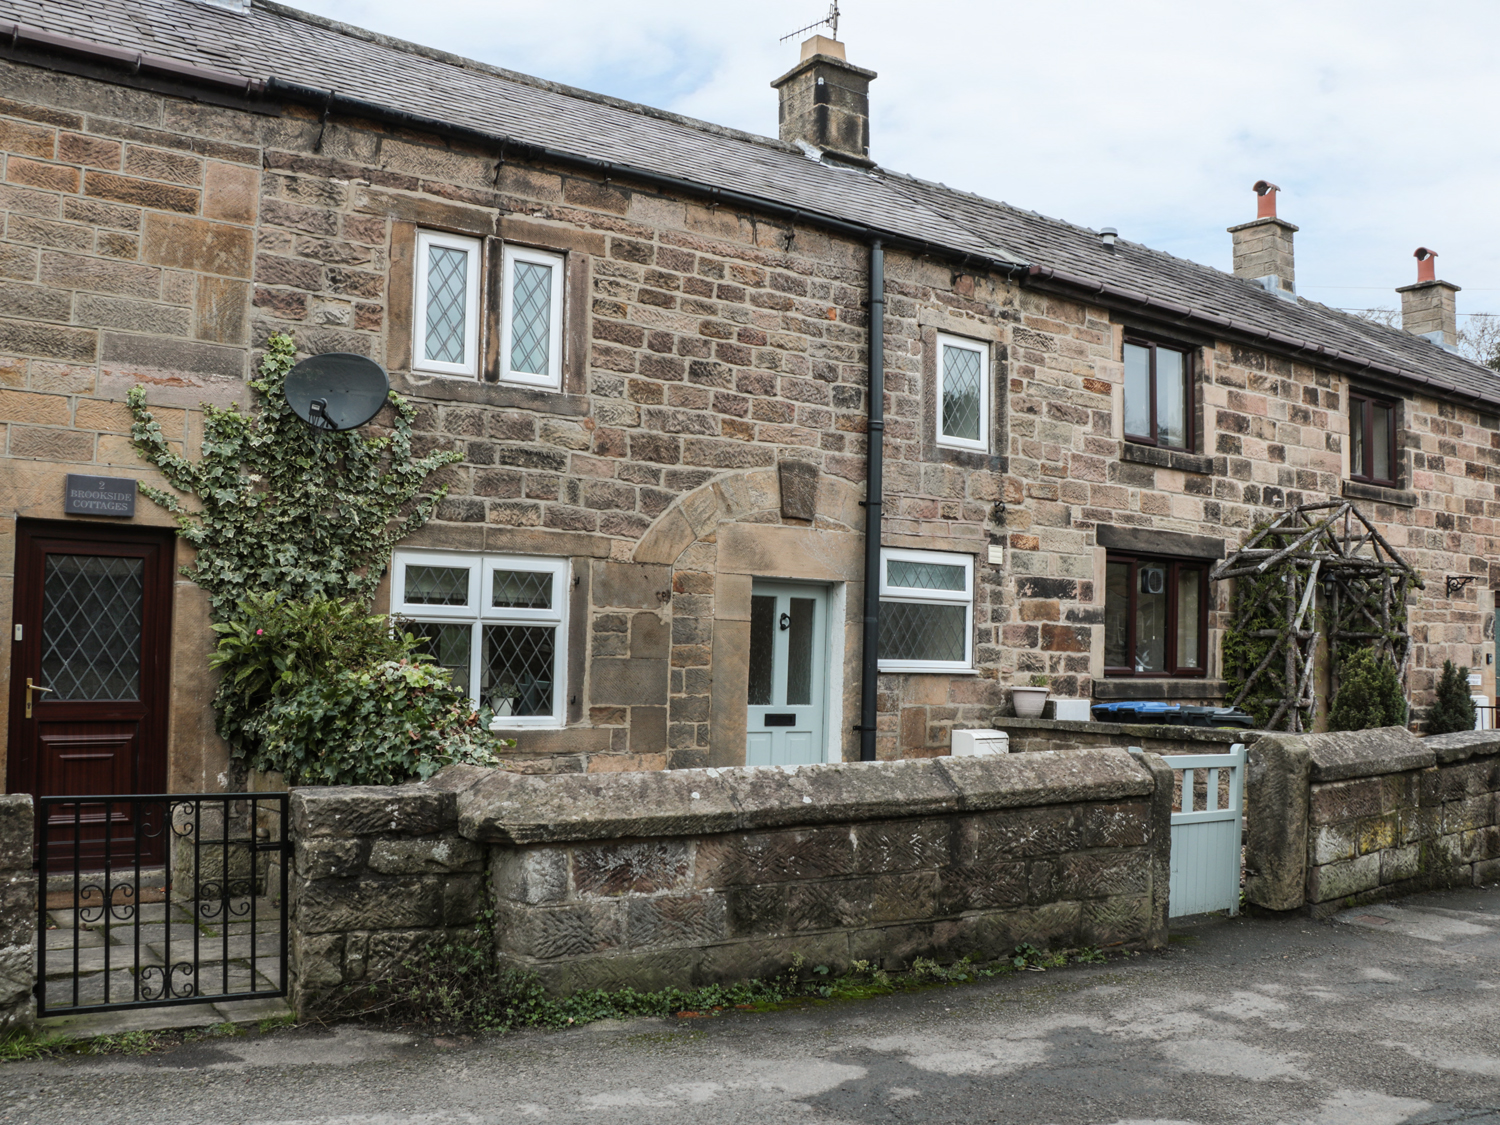 3 brookside cottages in two dales a mid terrace stone